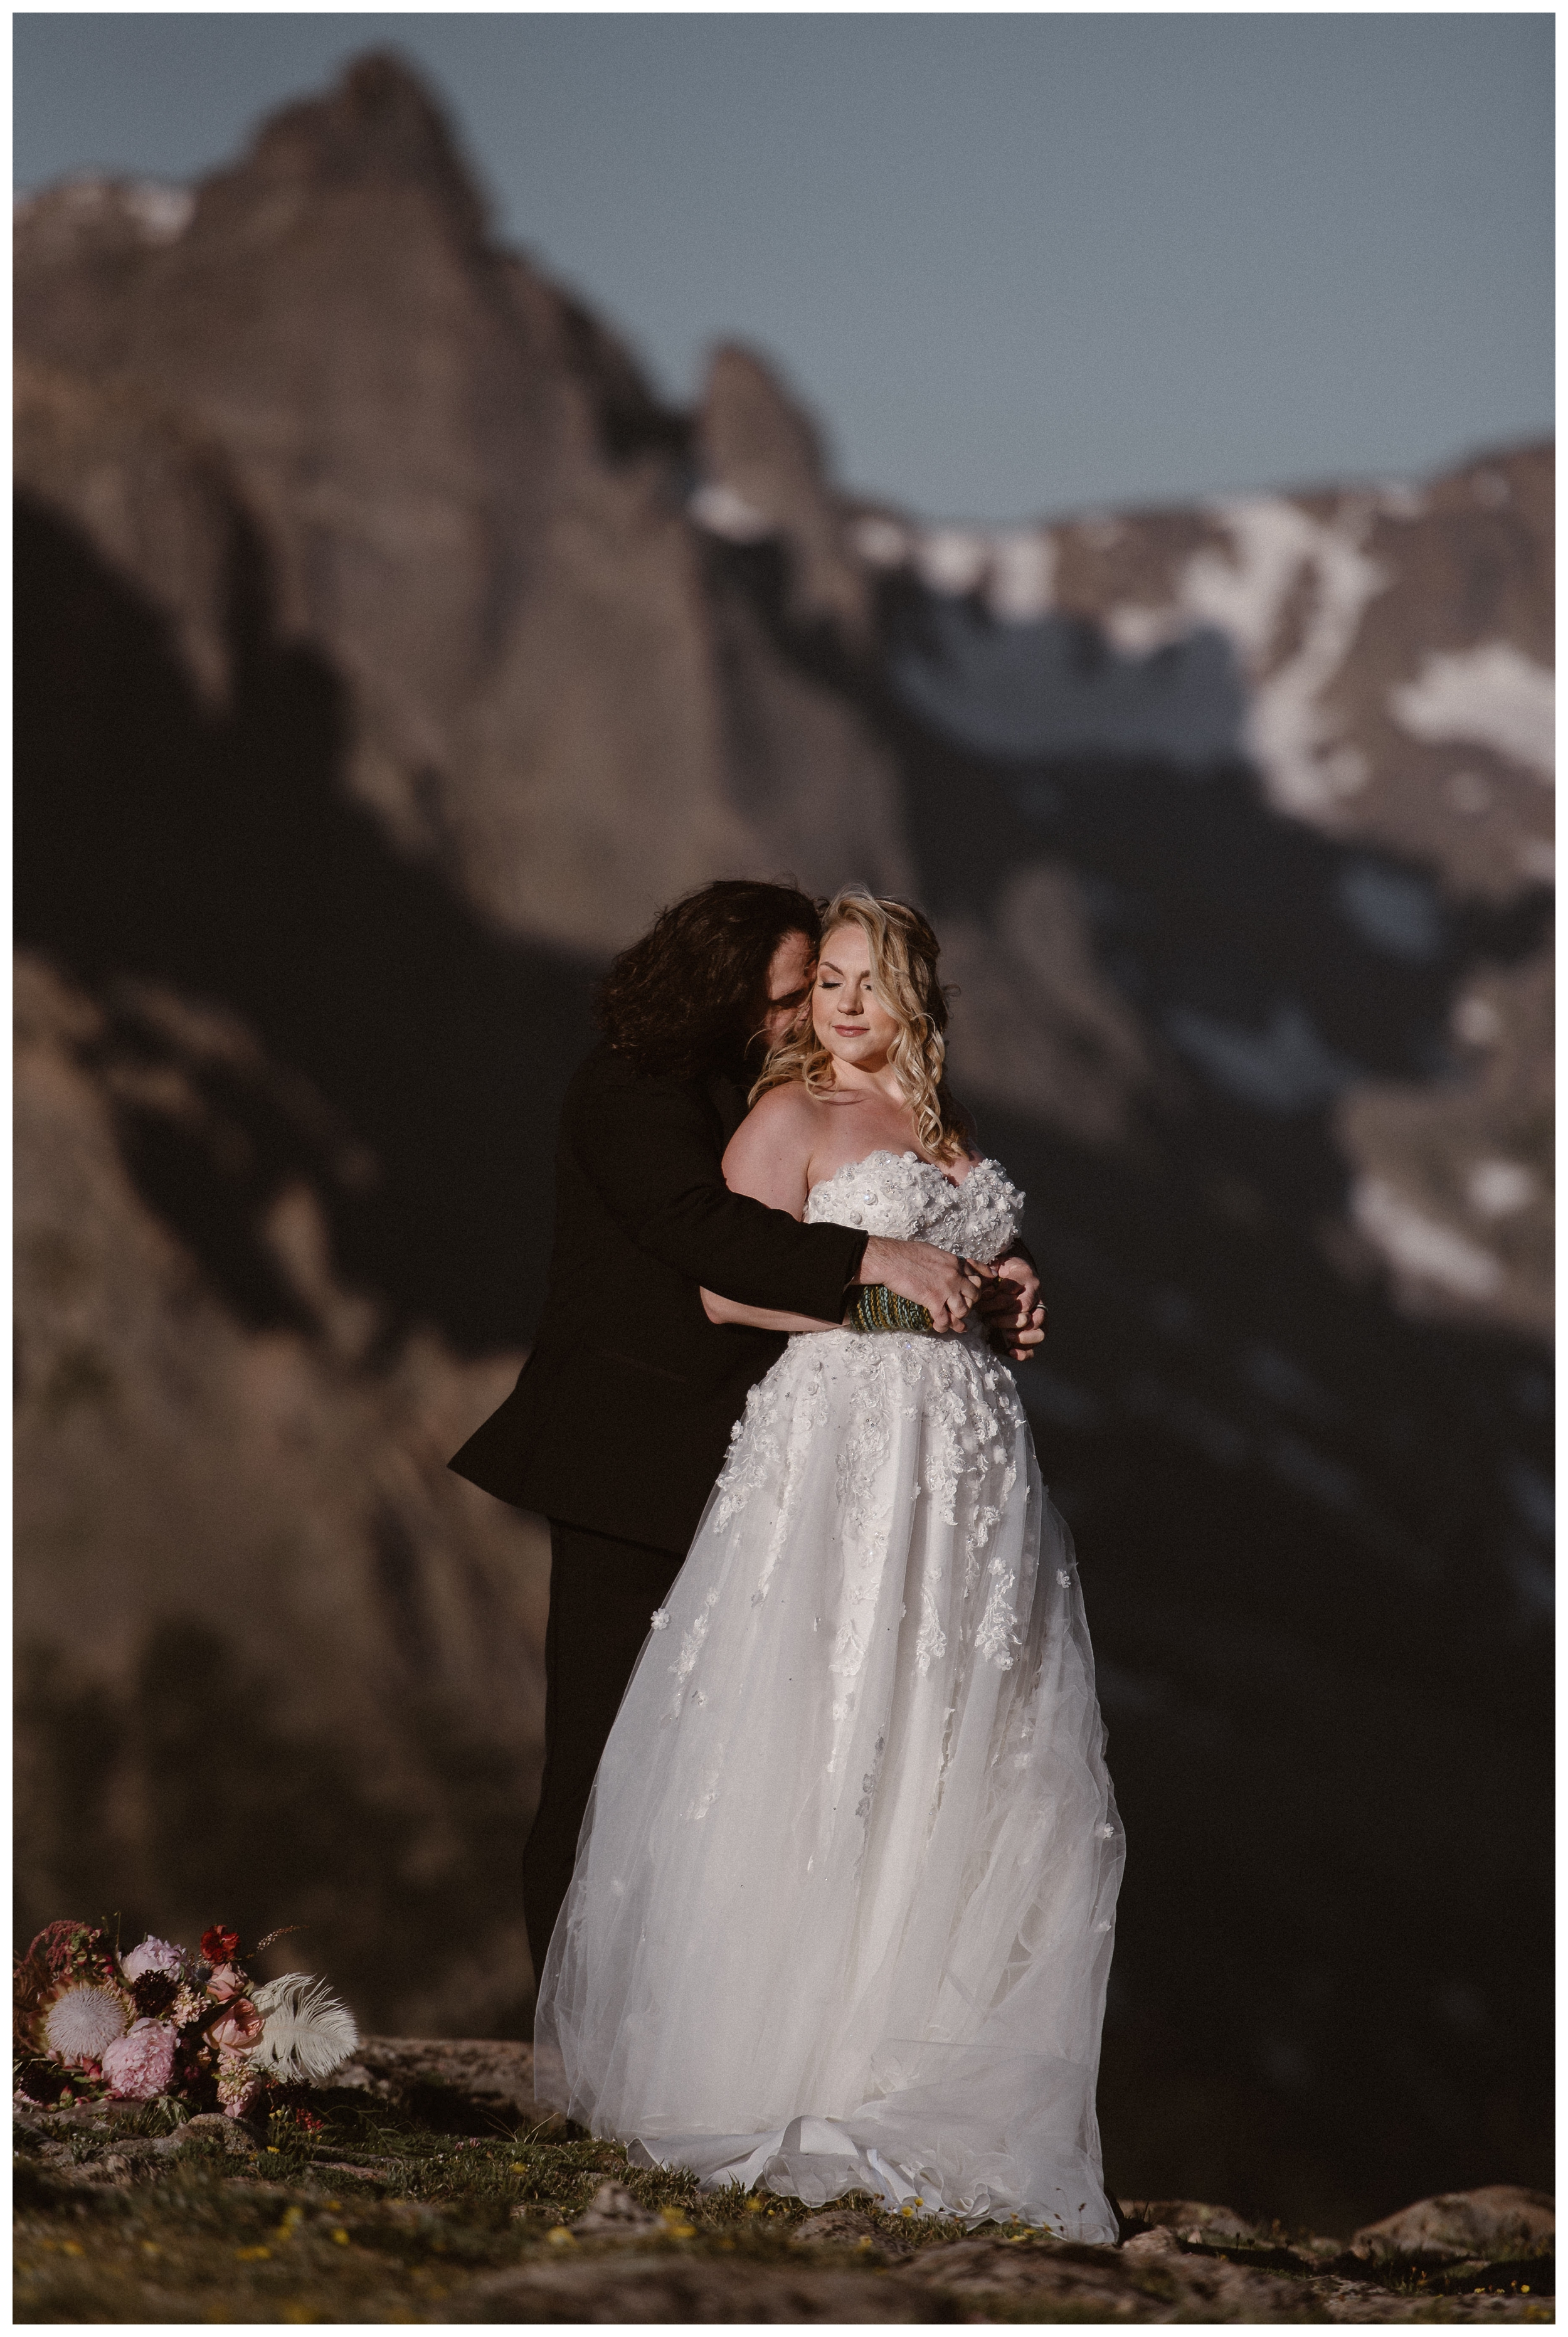 With her bouquet beside them, Alicia and Zach embrace during their first look before their elopement ceremony at 'the most beautiful place they'd ever seen' Trail Ridge Road, Rocky Mountain National Park. Photo by Adventure Instead, Maddie Mae.